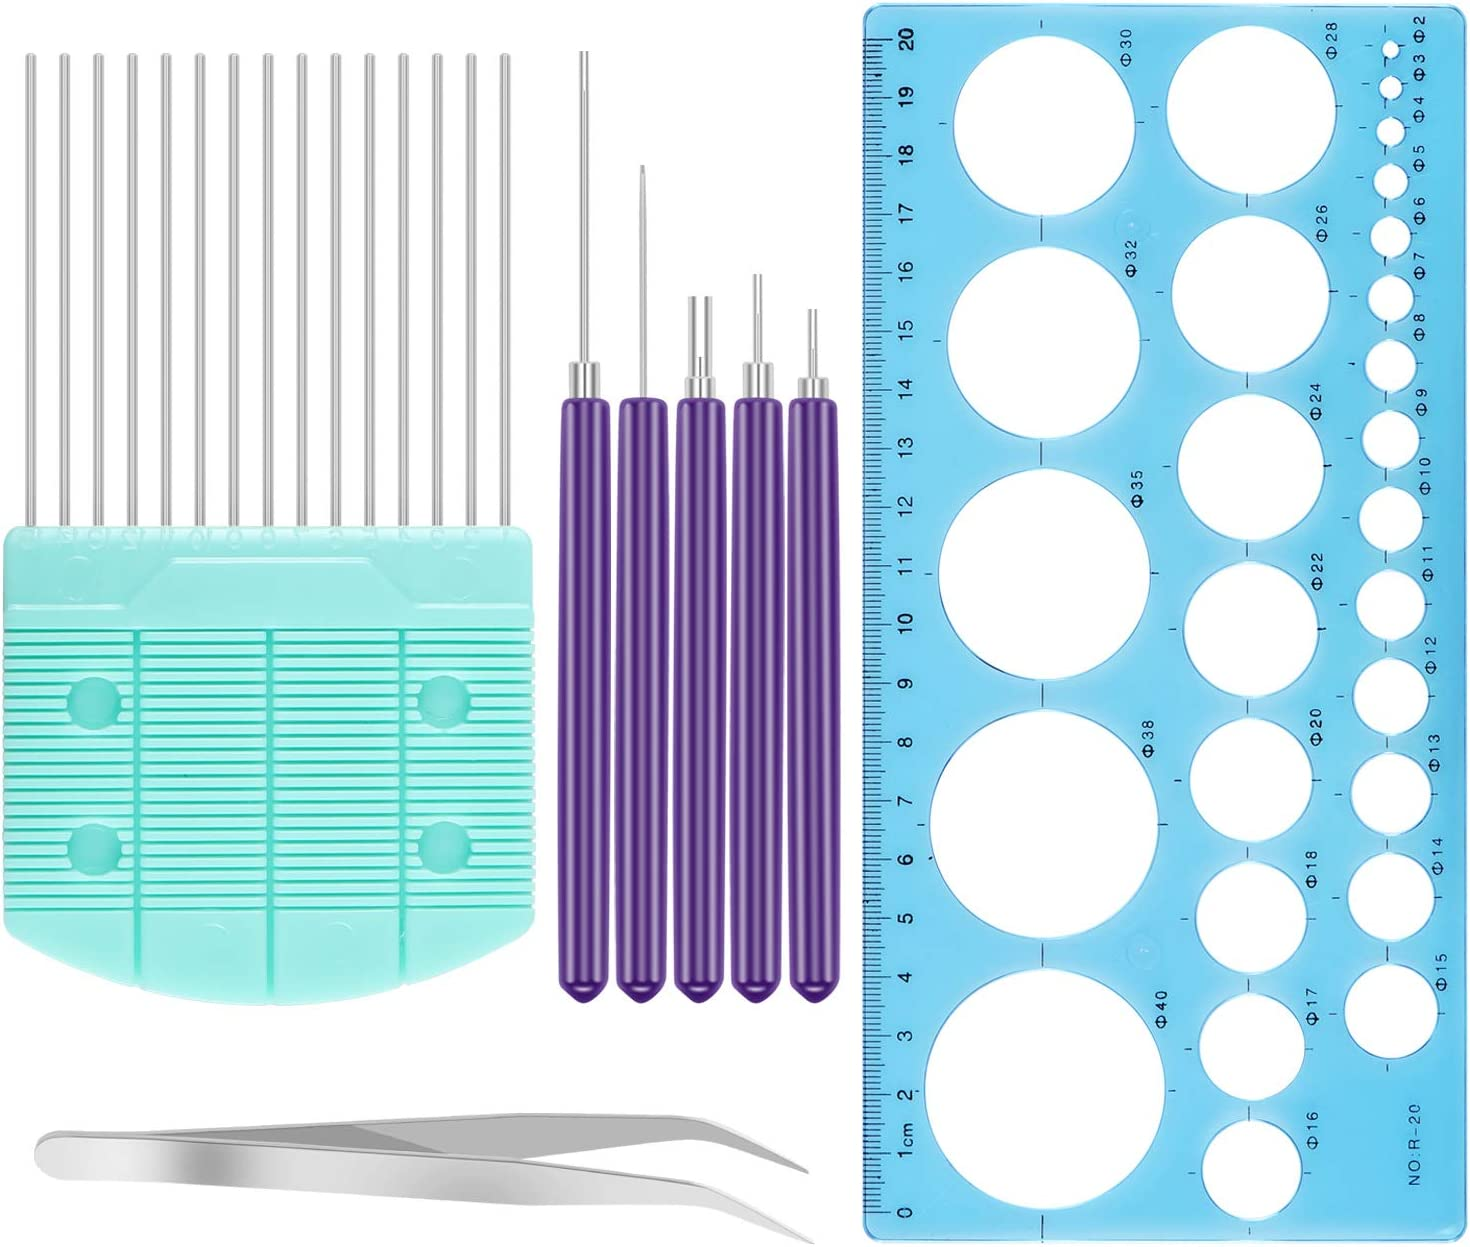 4pcs General DIY Paper Craft Quilling Tool Set with Quilling Template Board Slotted Roller Tool Blue Tweezer +Needles